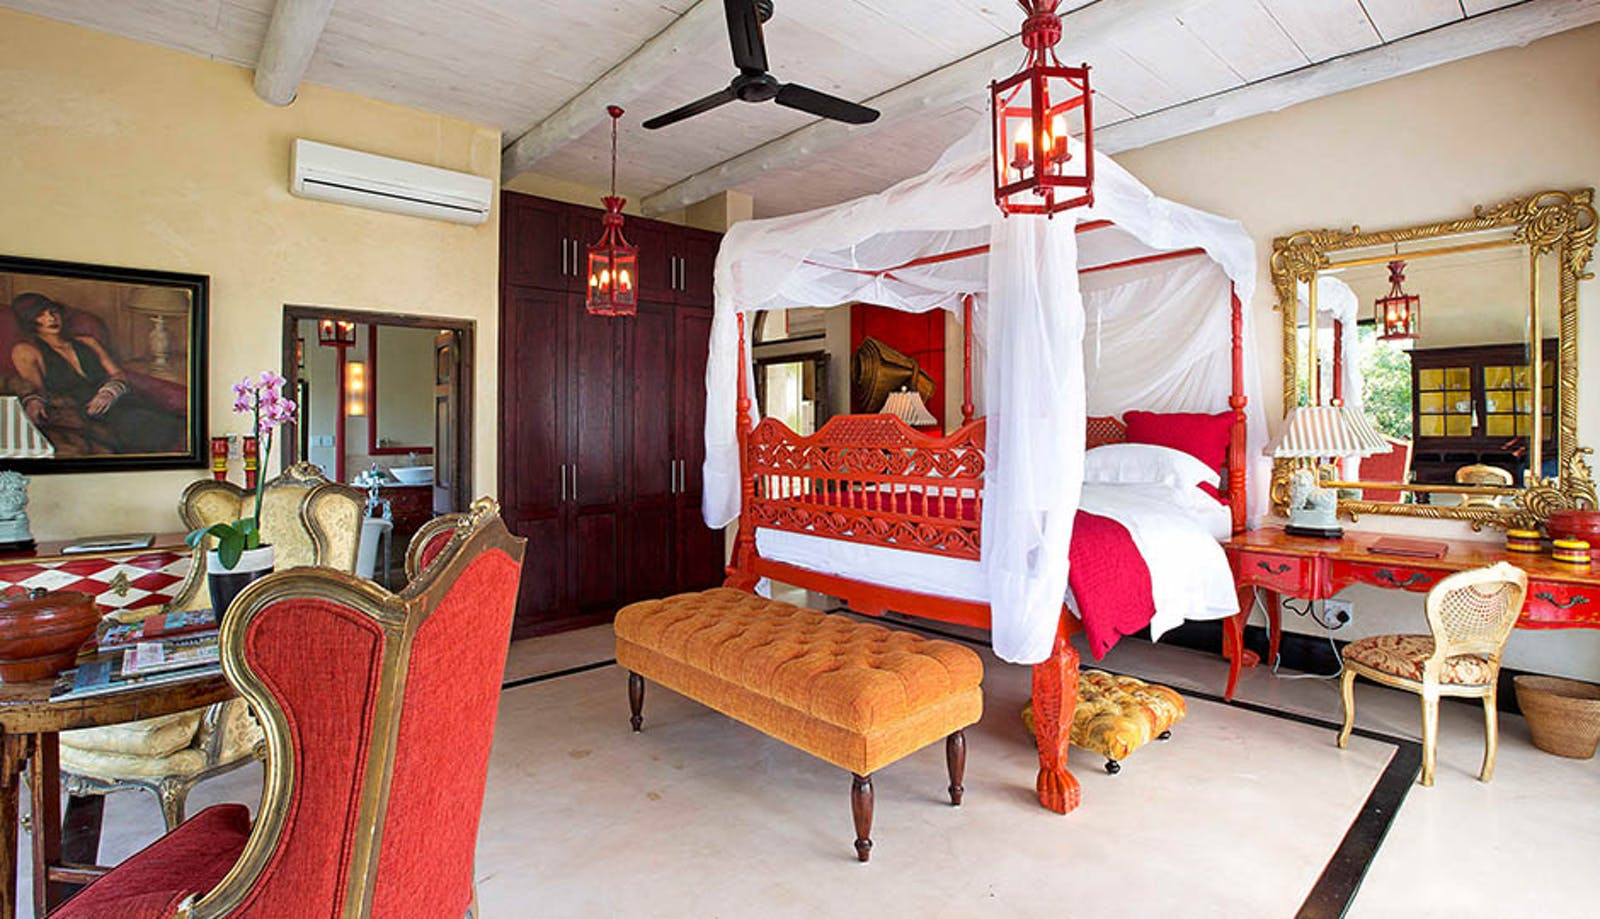 Bedroom at Royal Malewane Kruger National Park